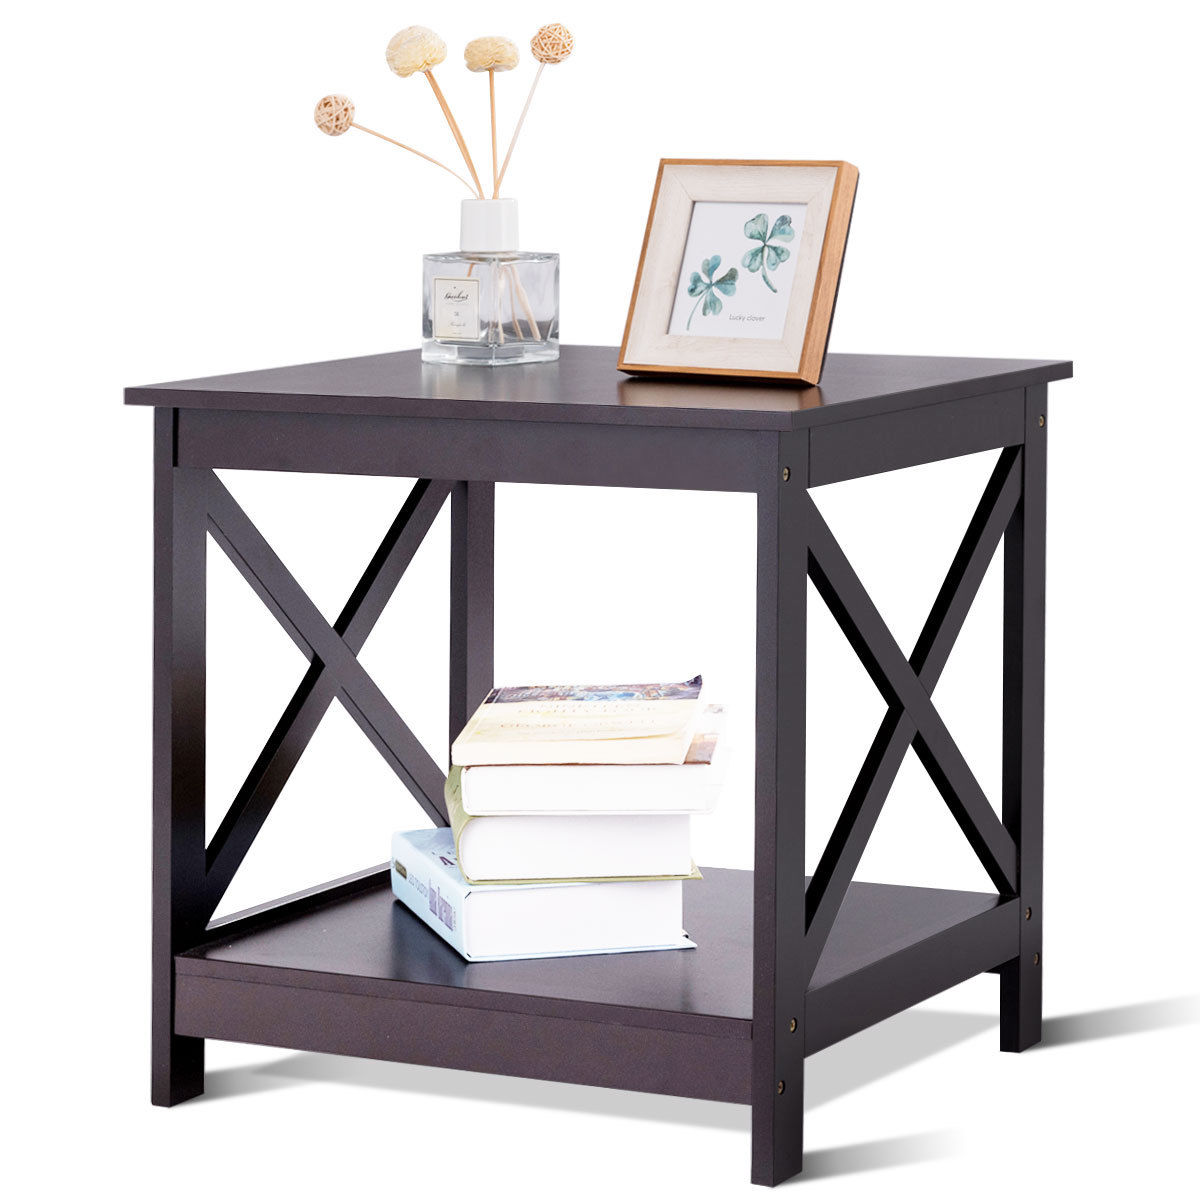 way end table design display shelves accent sofa side with drawer nightstand brown modern style tables trestle chairs drum seat cover room essentials brand stained glass light